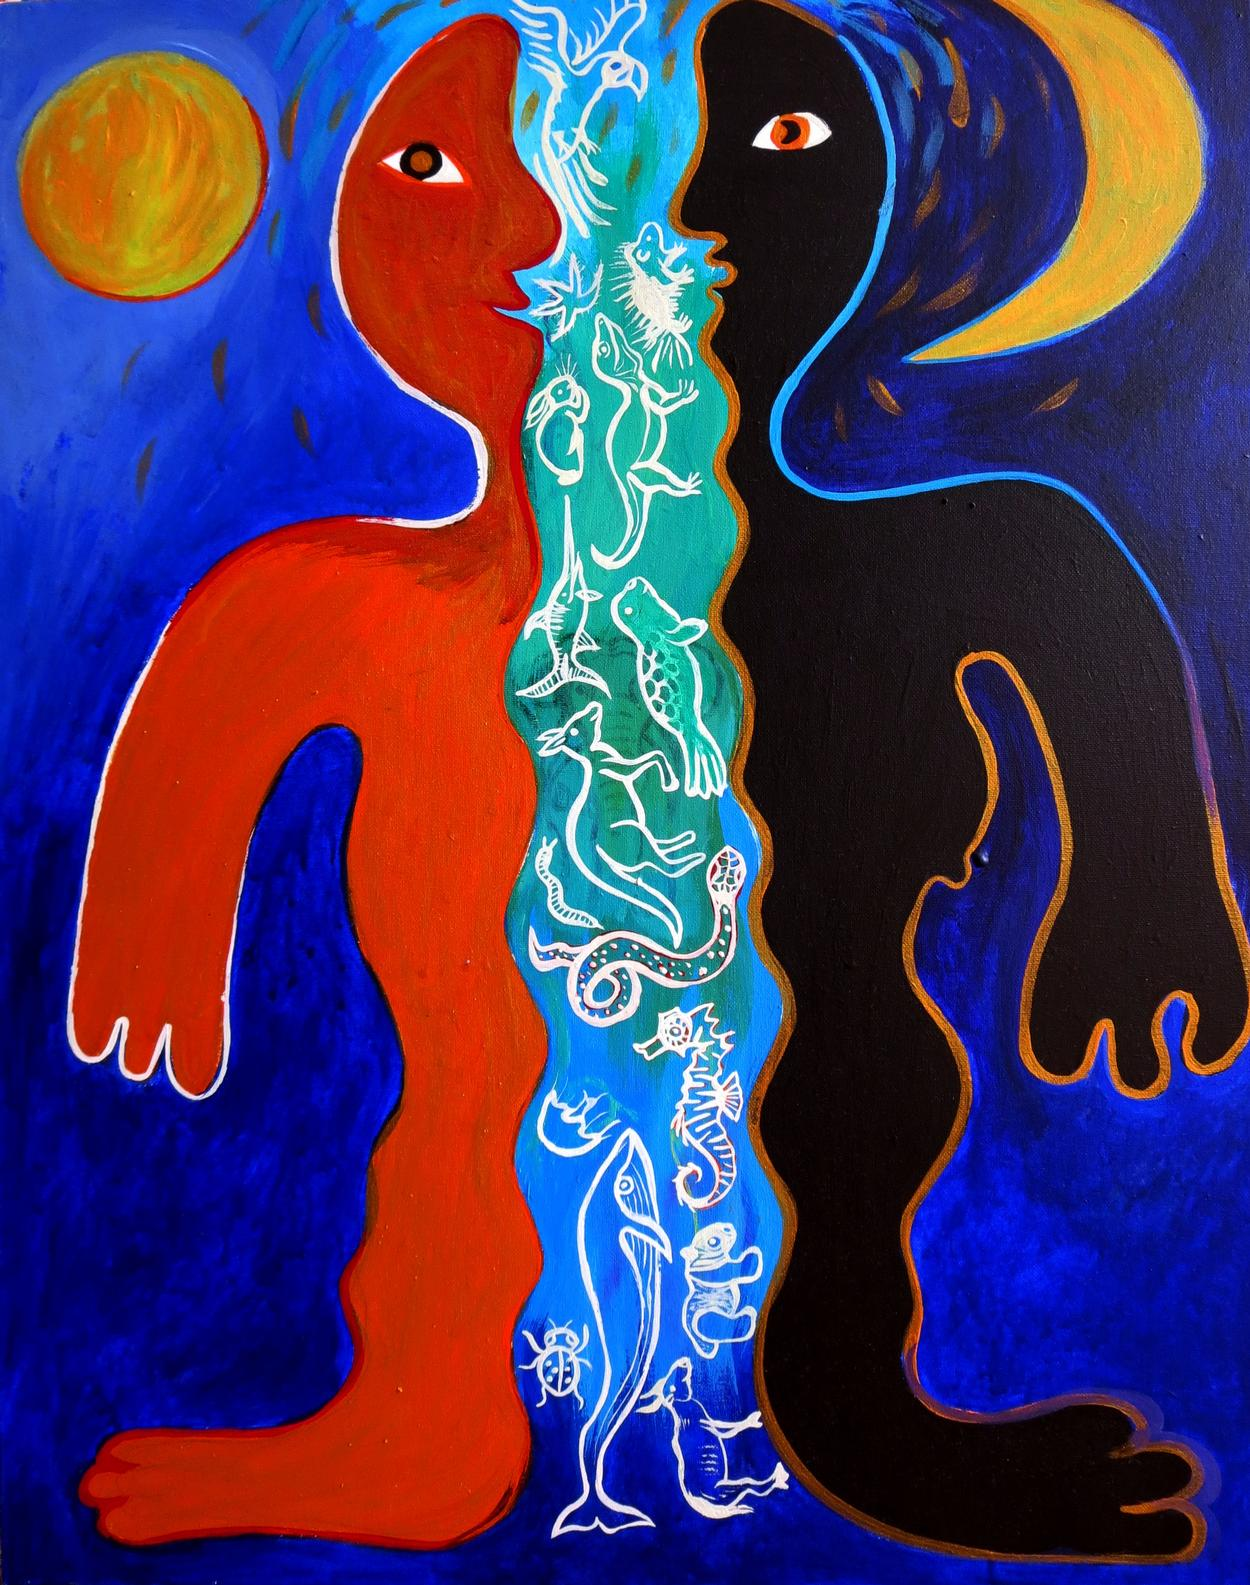 TWINS & THE DOUBLE | Shamanic teacher, painter and author in